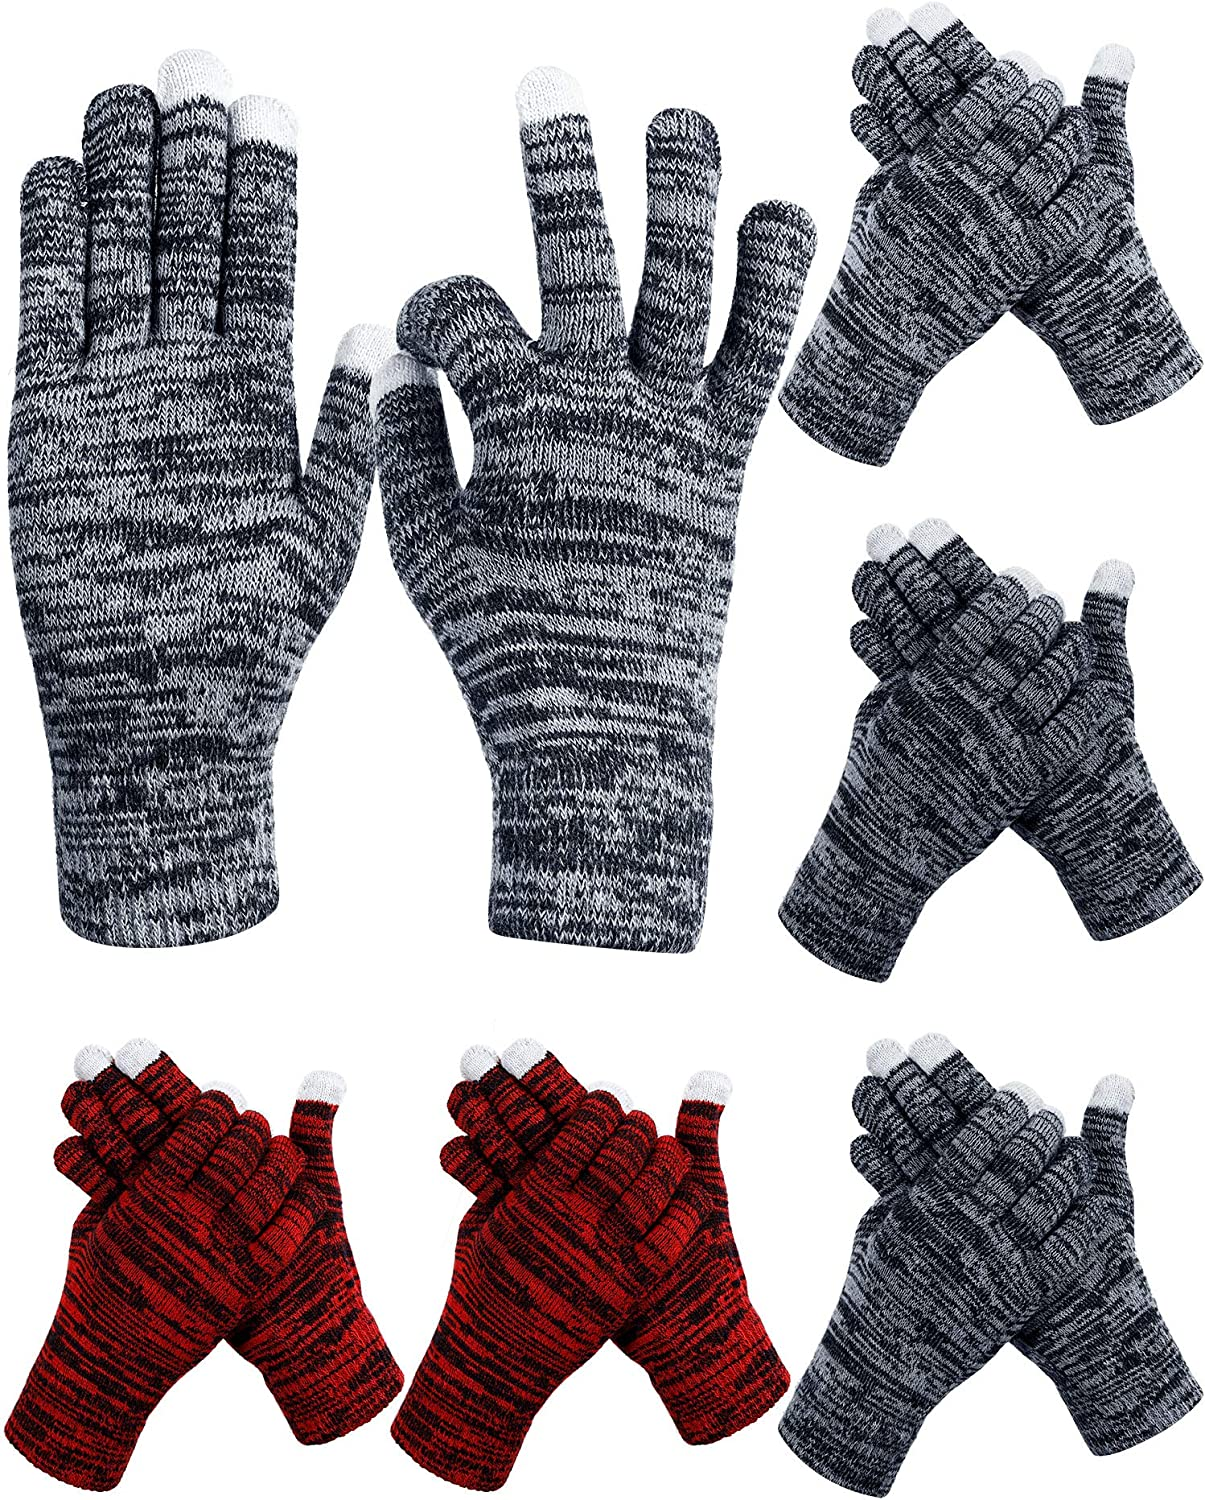 6 Pairs Winter Knit Gloves Touchscreen Gloves Full Finger Gloves Warm Thermal Elastic Cuff Typing Gloves Mittens